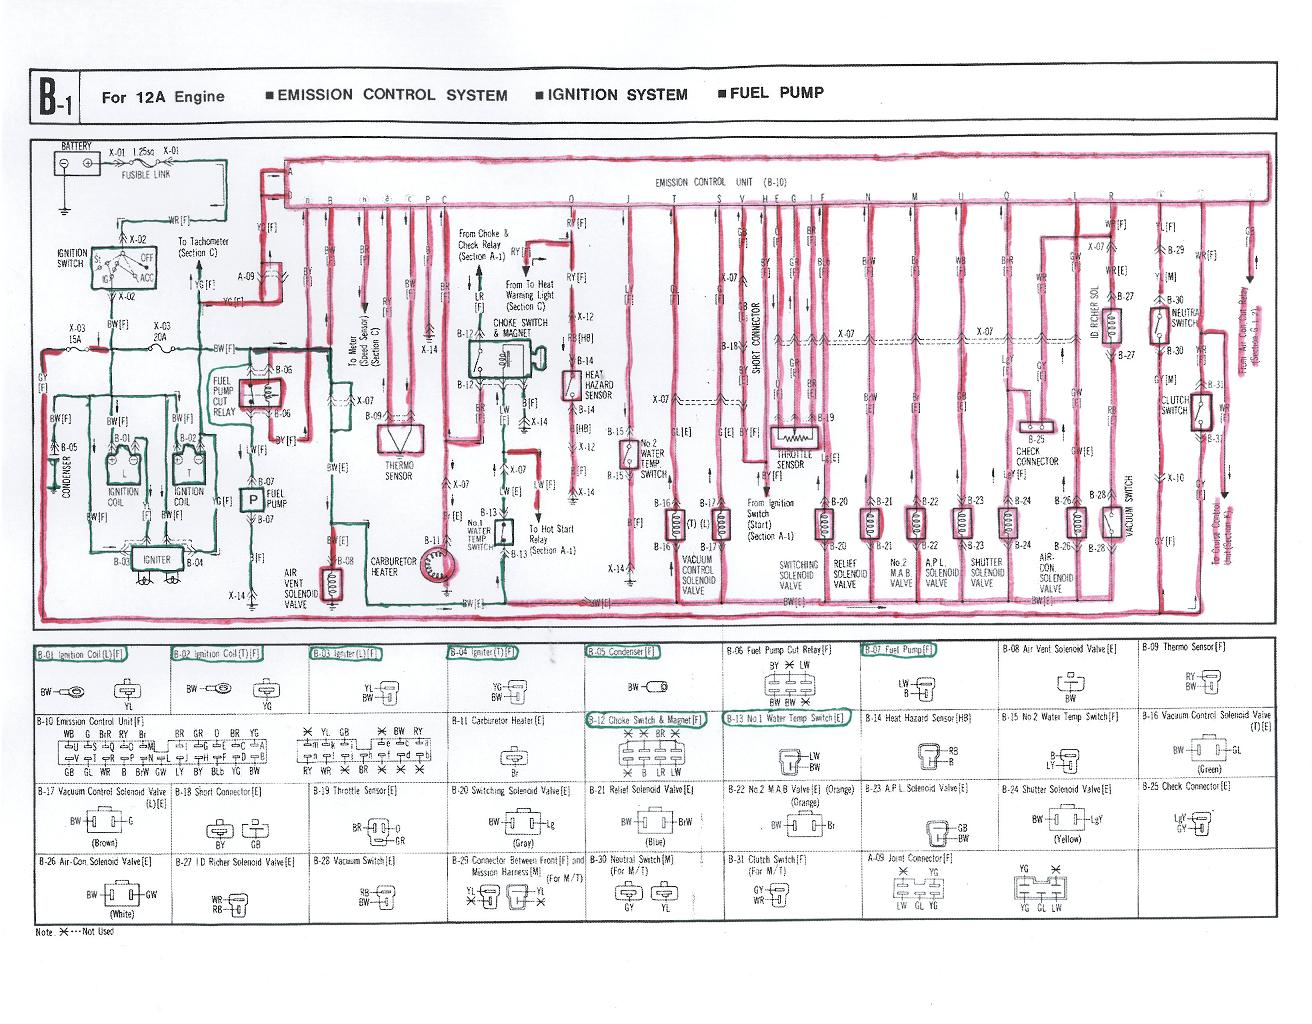 schematic wiring diagram sterling truck direct tv vw beetle 1 9 tdi engine free image